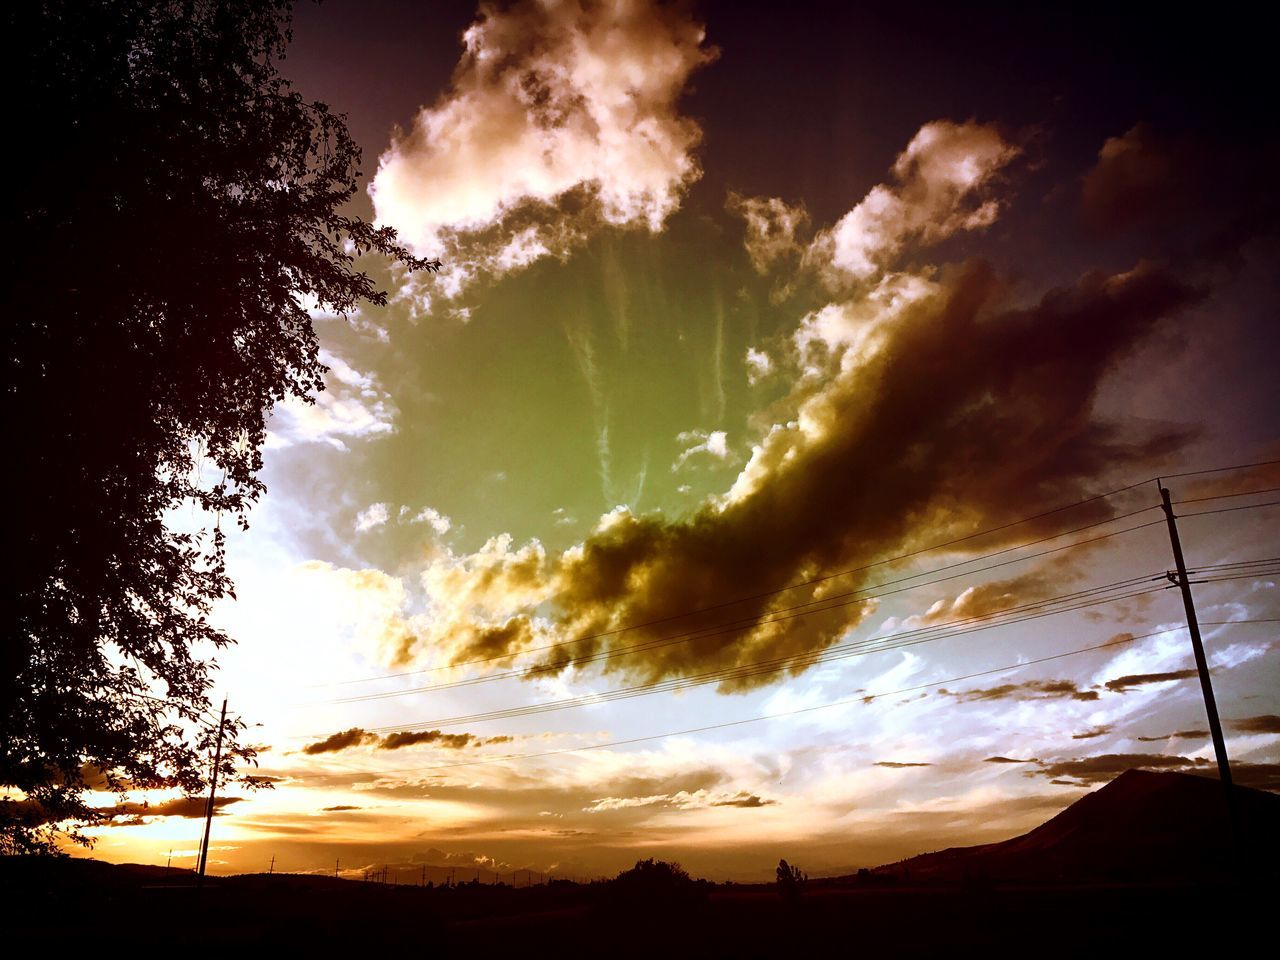 Sky Nature Silhouette Sunset Cloud - Sky No People Beauty In Nature Scenics Tranquil Scene Tree Tranquility Outdoors Low Angle View Day